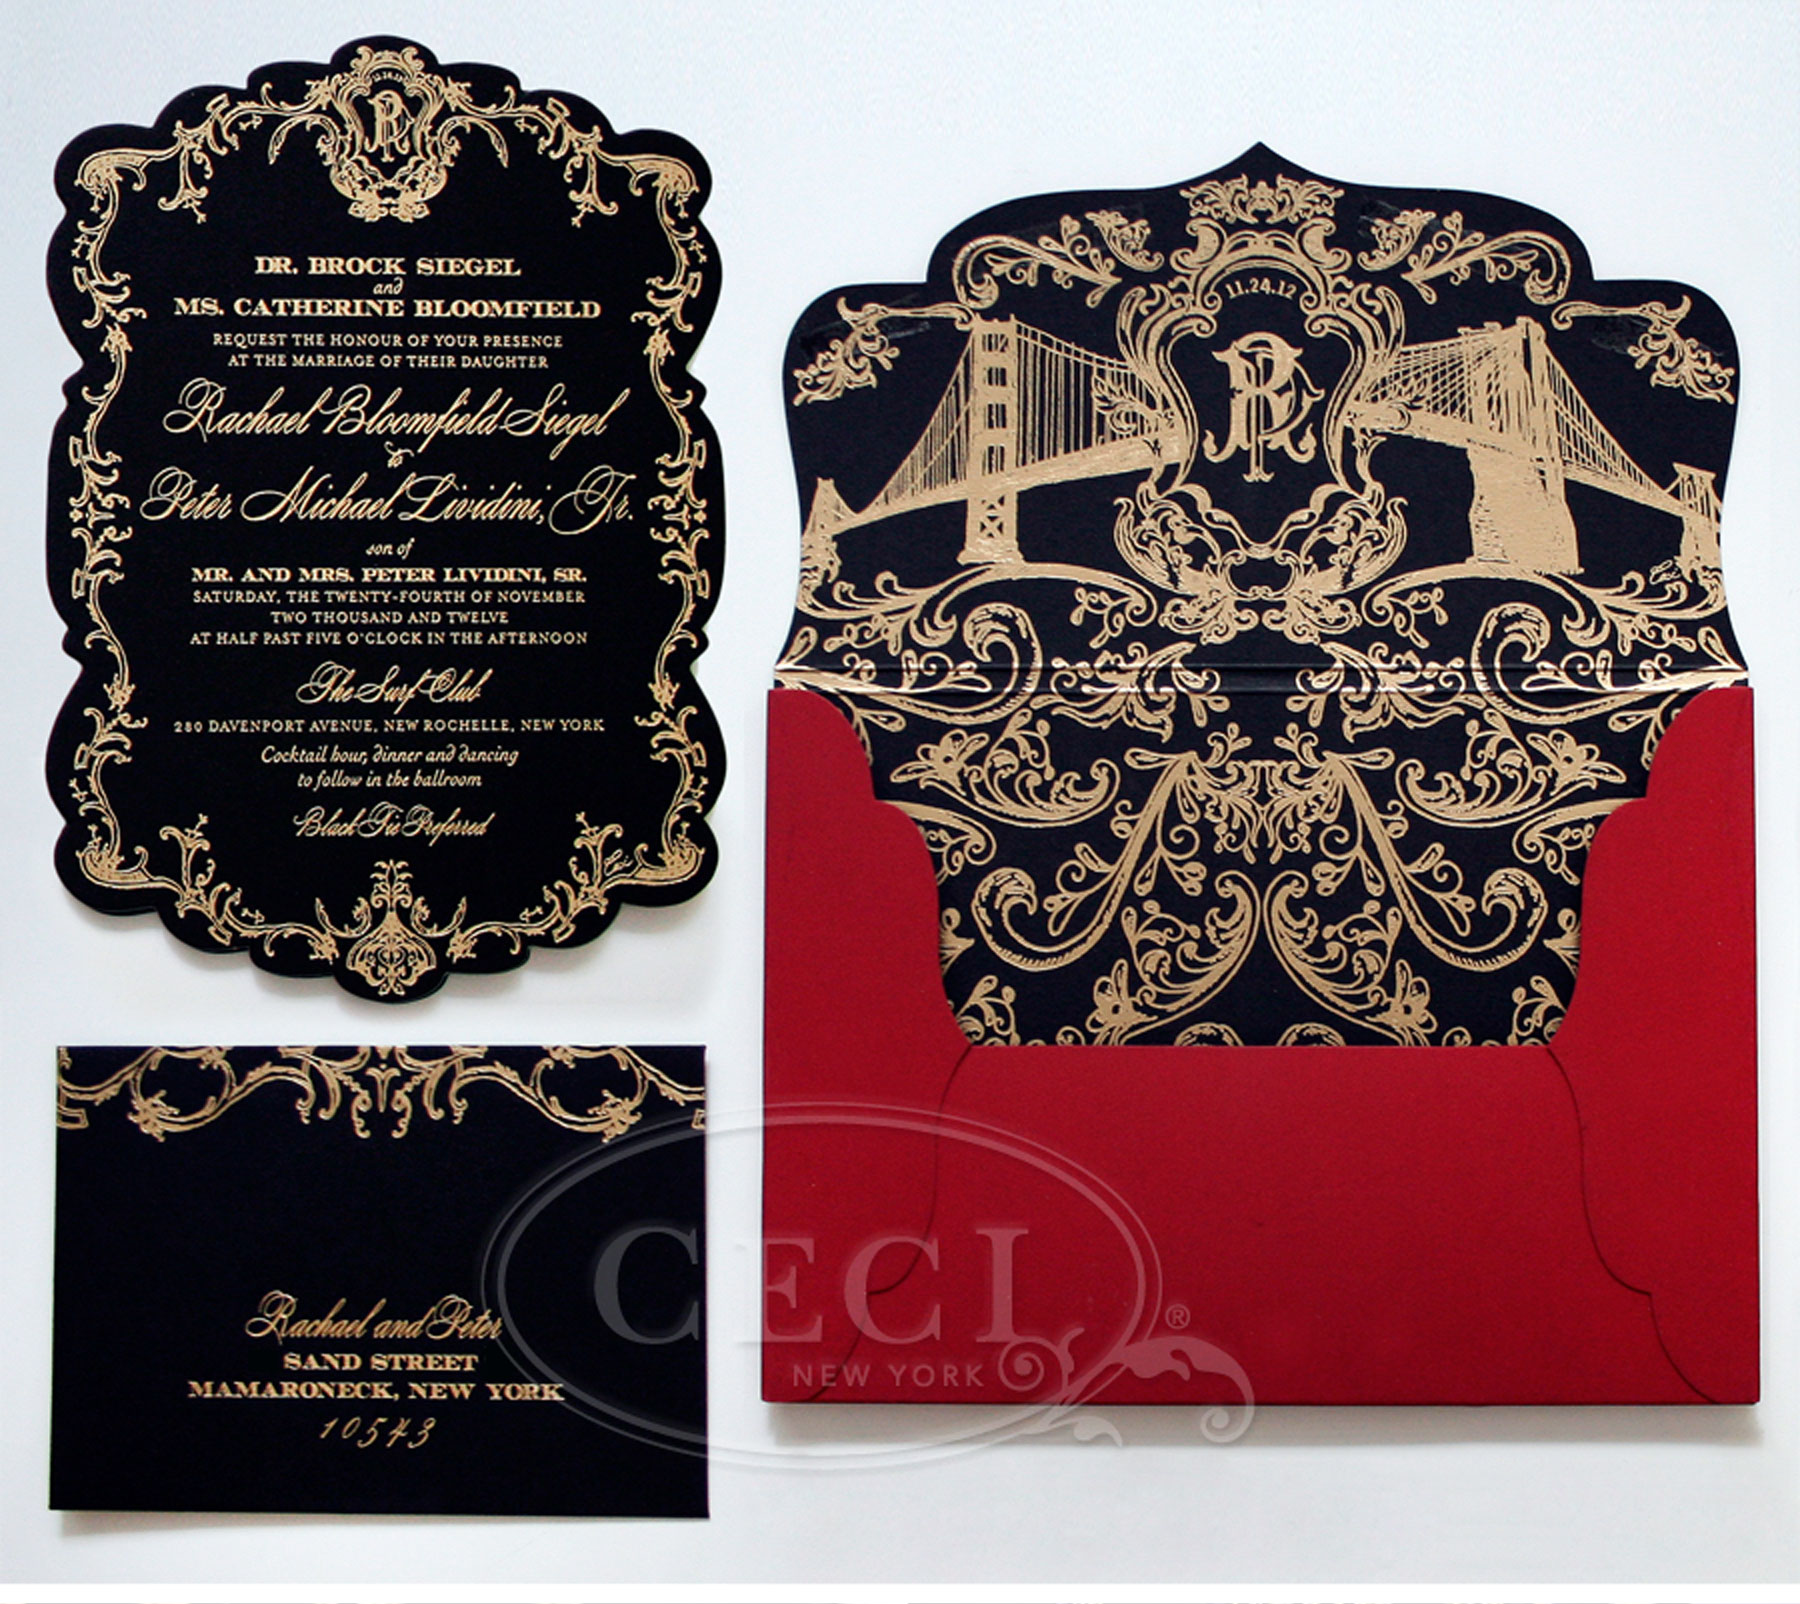 Ceci New York Wedding Invitations is good invitations template